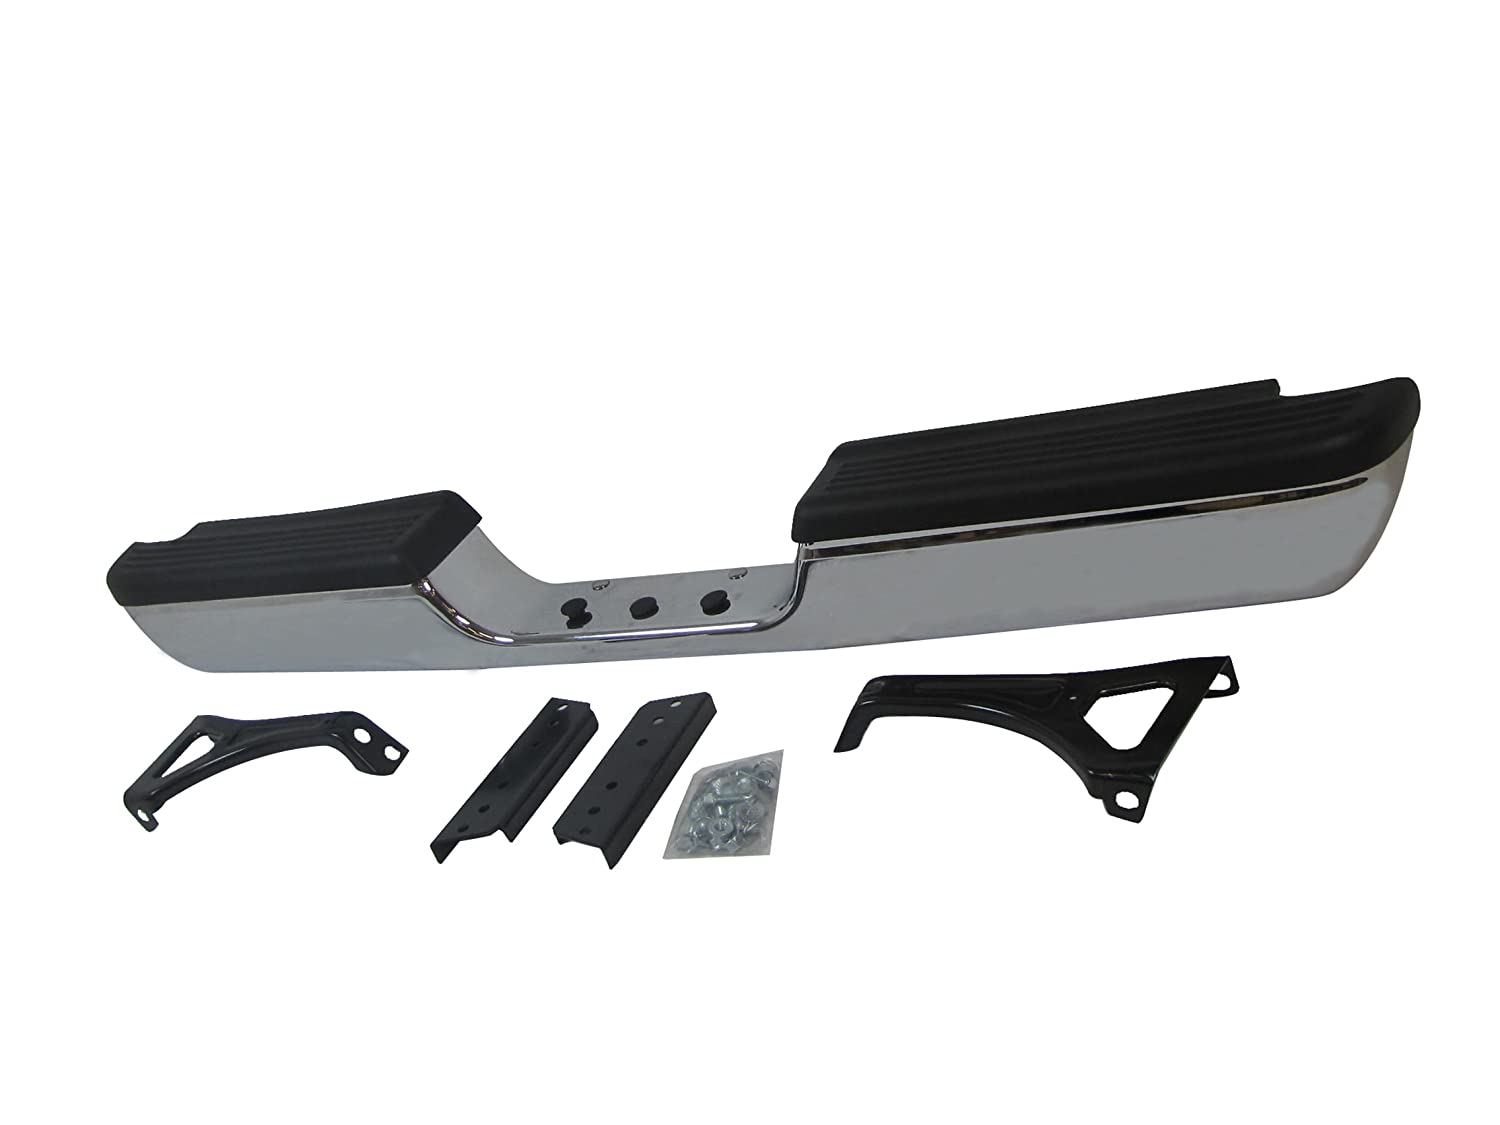 W//o Sport Model with Outer Bracket with Inner Bracket 94-01 Dodge Pickup Ram1500 with Hintch CH1102328 // 94-02 RAM 2500 3500 Pickup Rear Step Bumper Chrome Full Assy with Top Pad